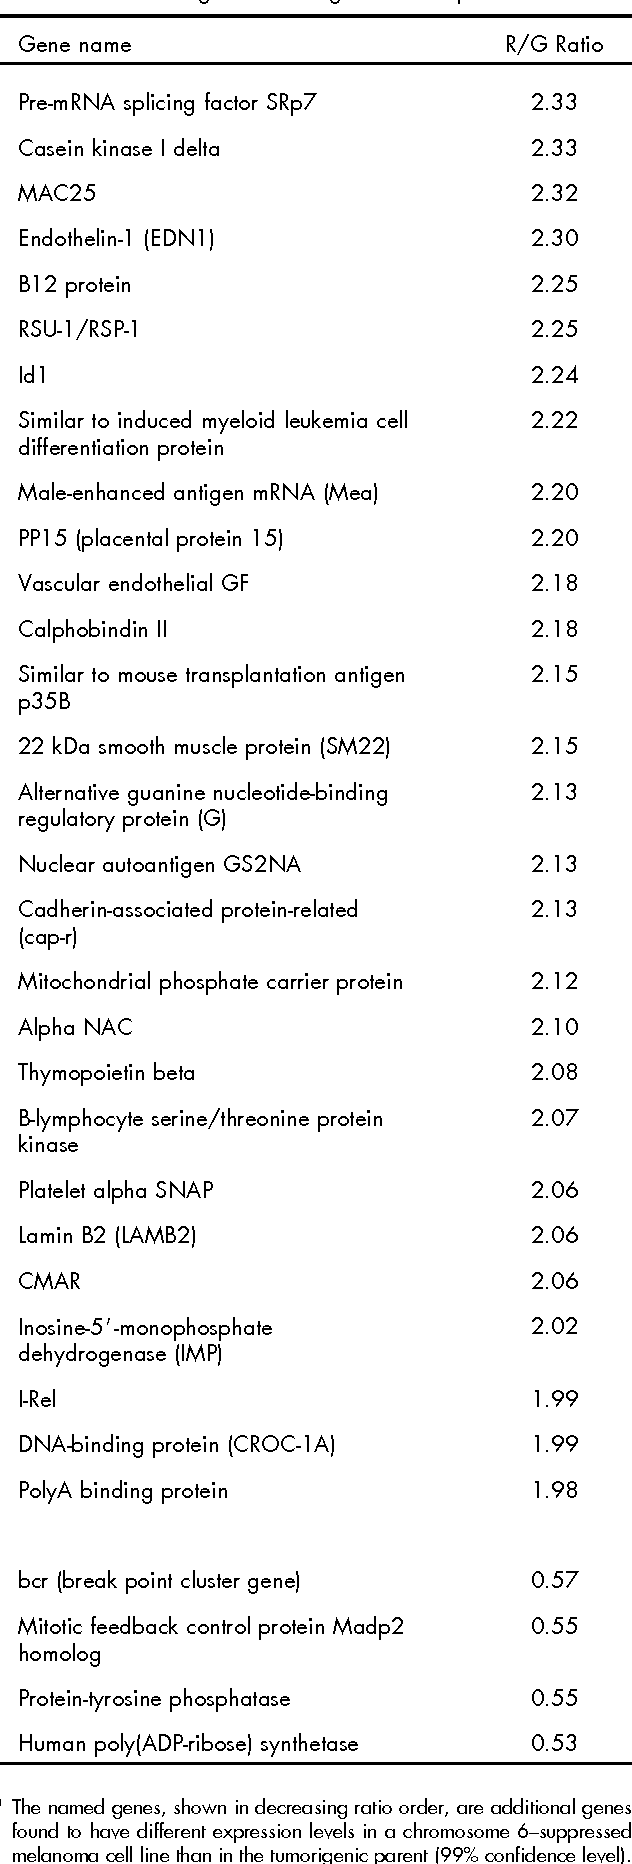 Table 4 Additional genes showing different expression levels.a